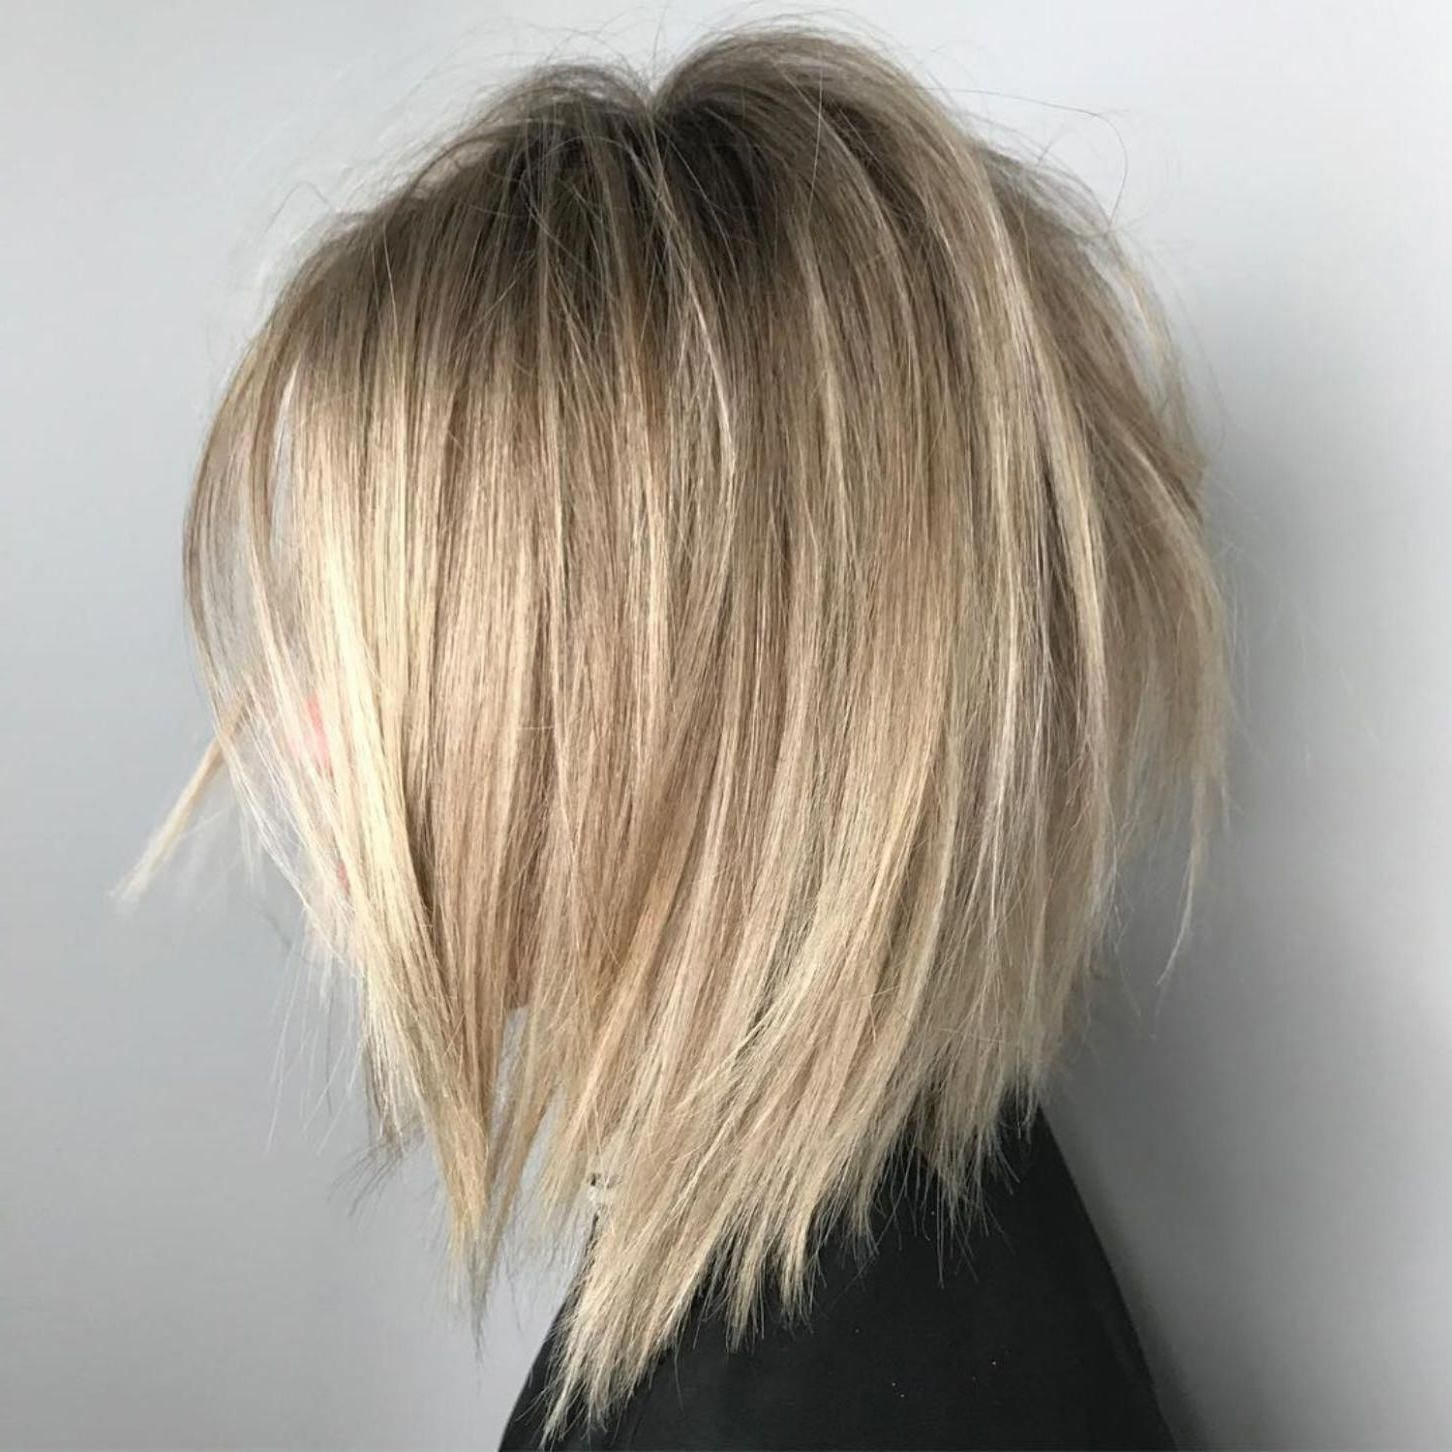 Choppy Jagged Bob For Straight Hair #bobstylehaircuts Pertaining To Widely Used Jagged Bob Hairstyles For Round Faces (View 3 of 20)